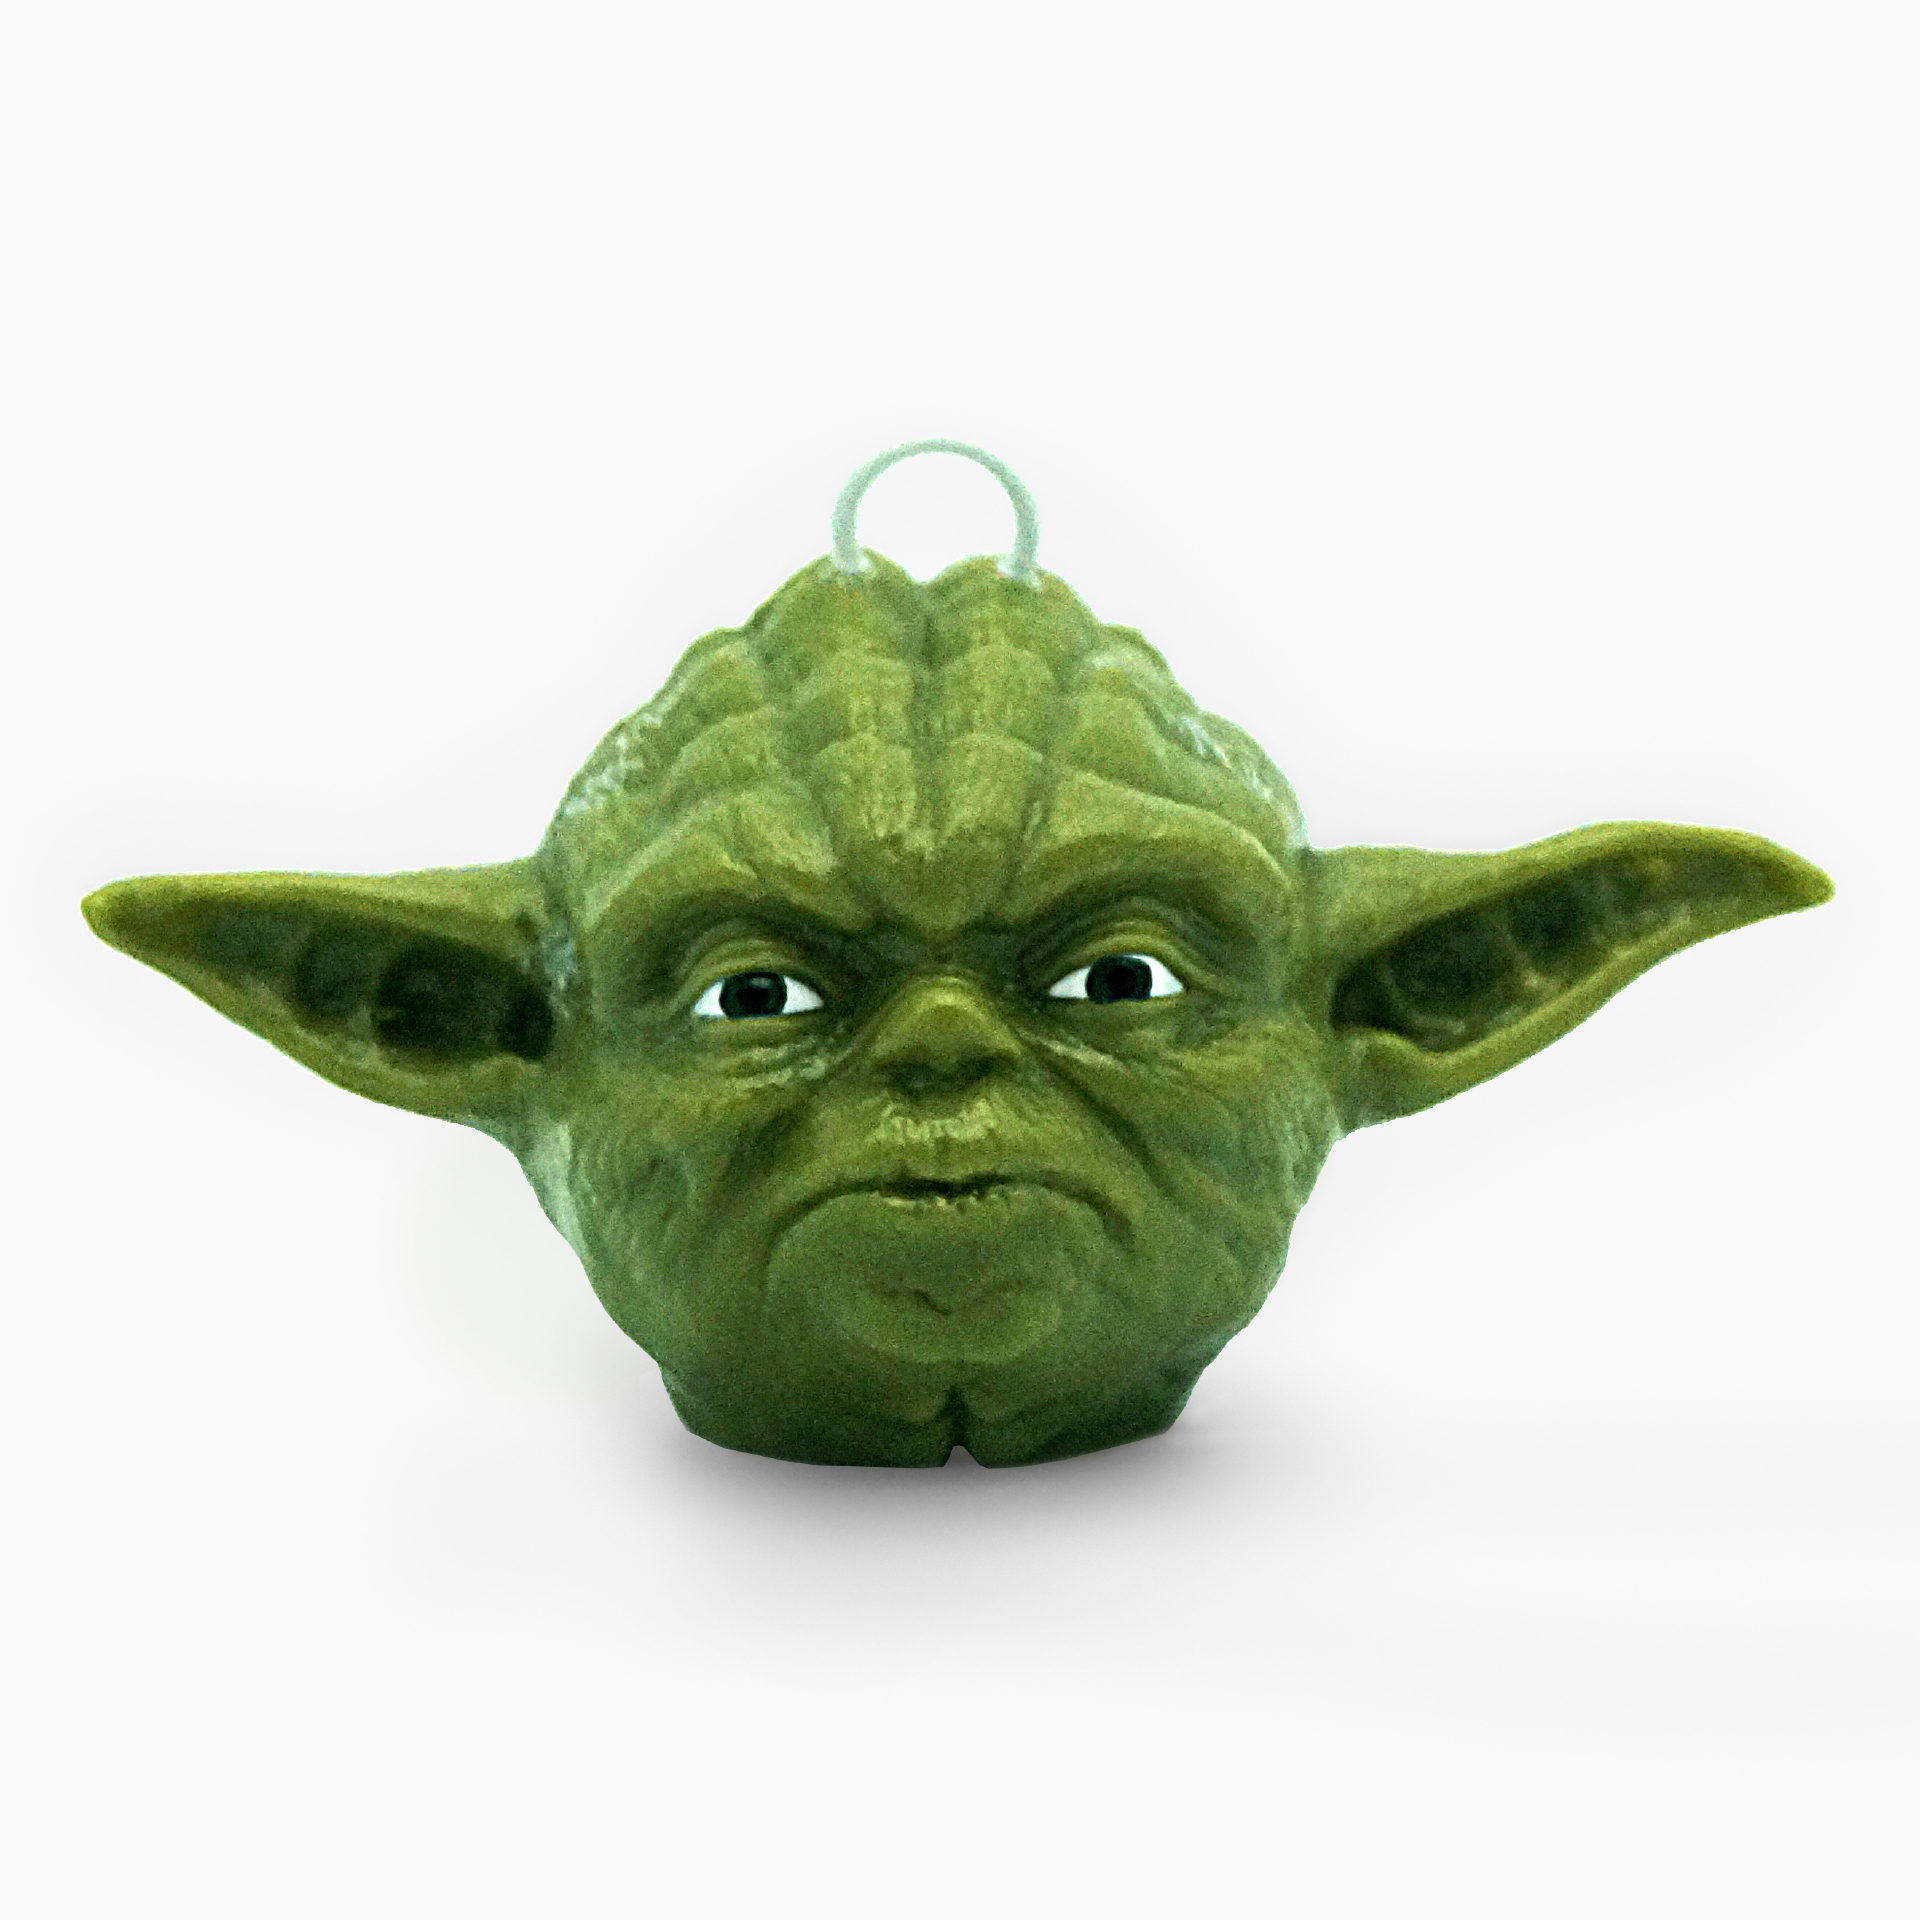 Custom Vinyl Figure - Star Wars Yoda